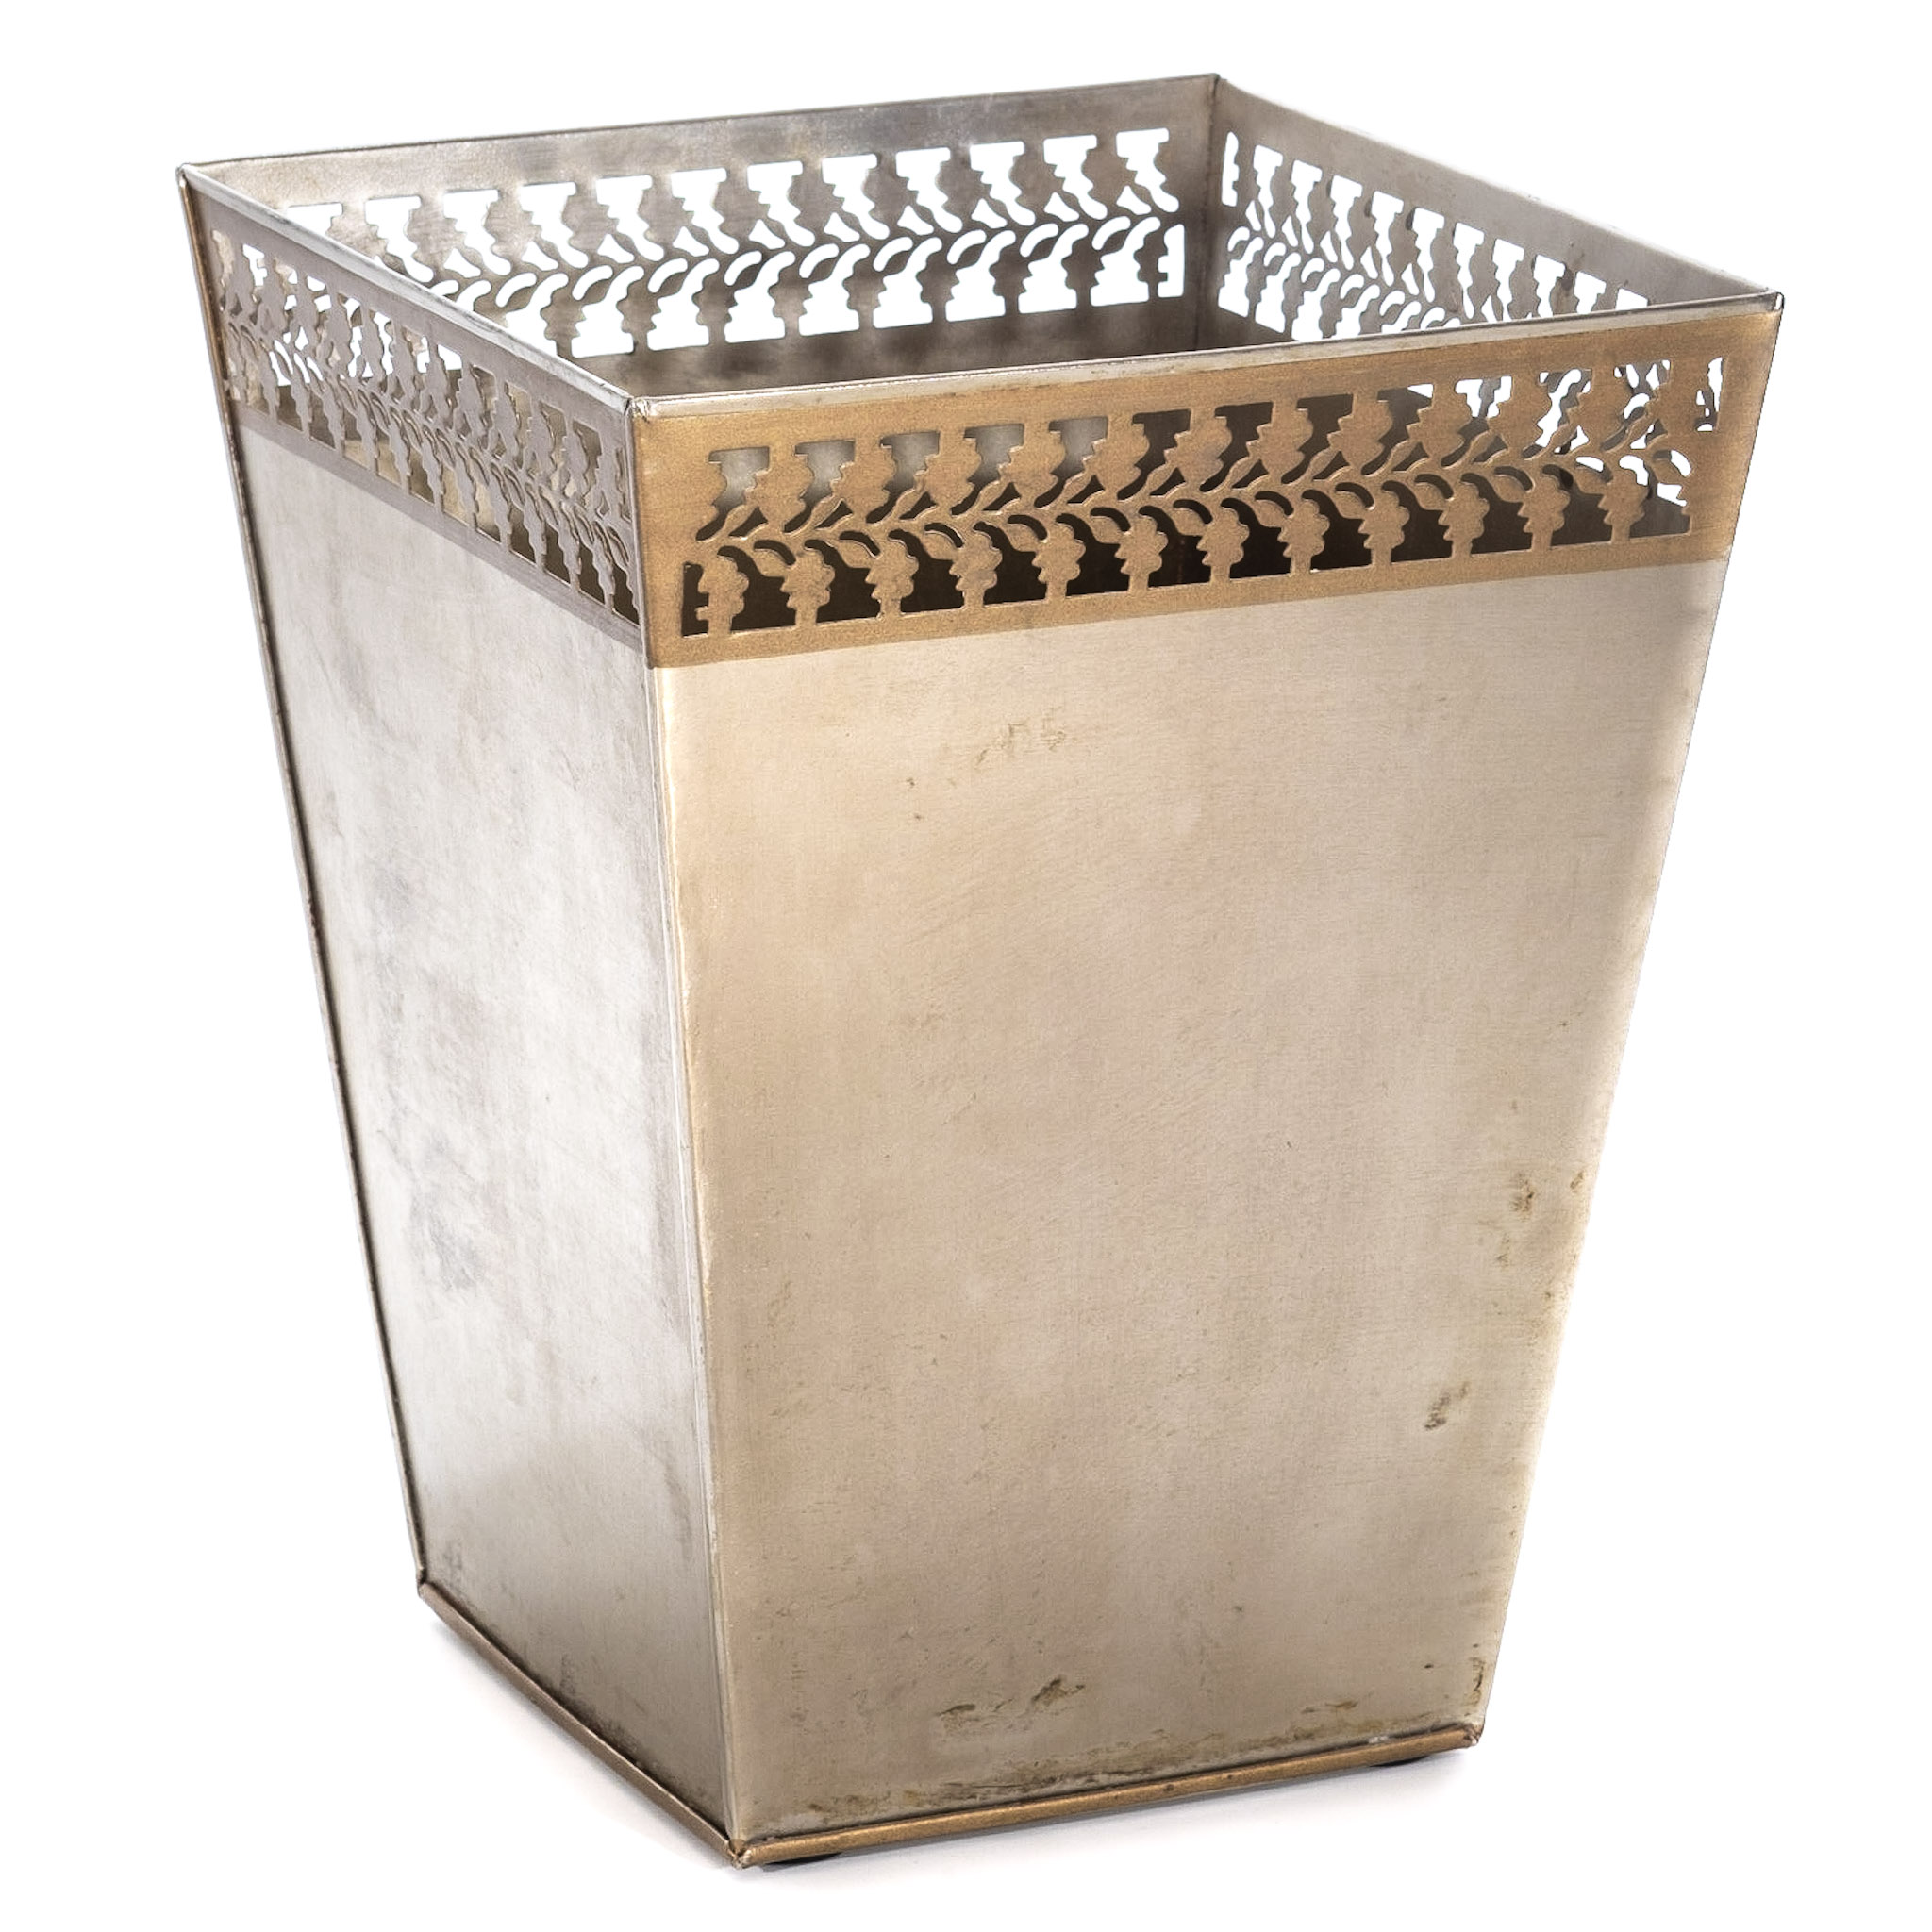 Bronze Fancy Luxury Bedroom Waste Paper Bin Basket